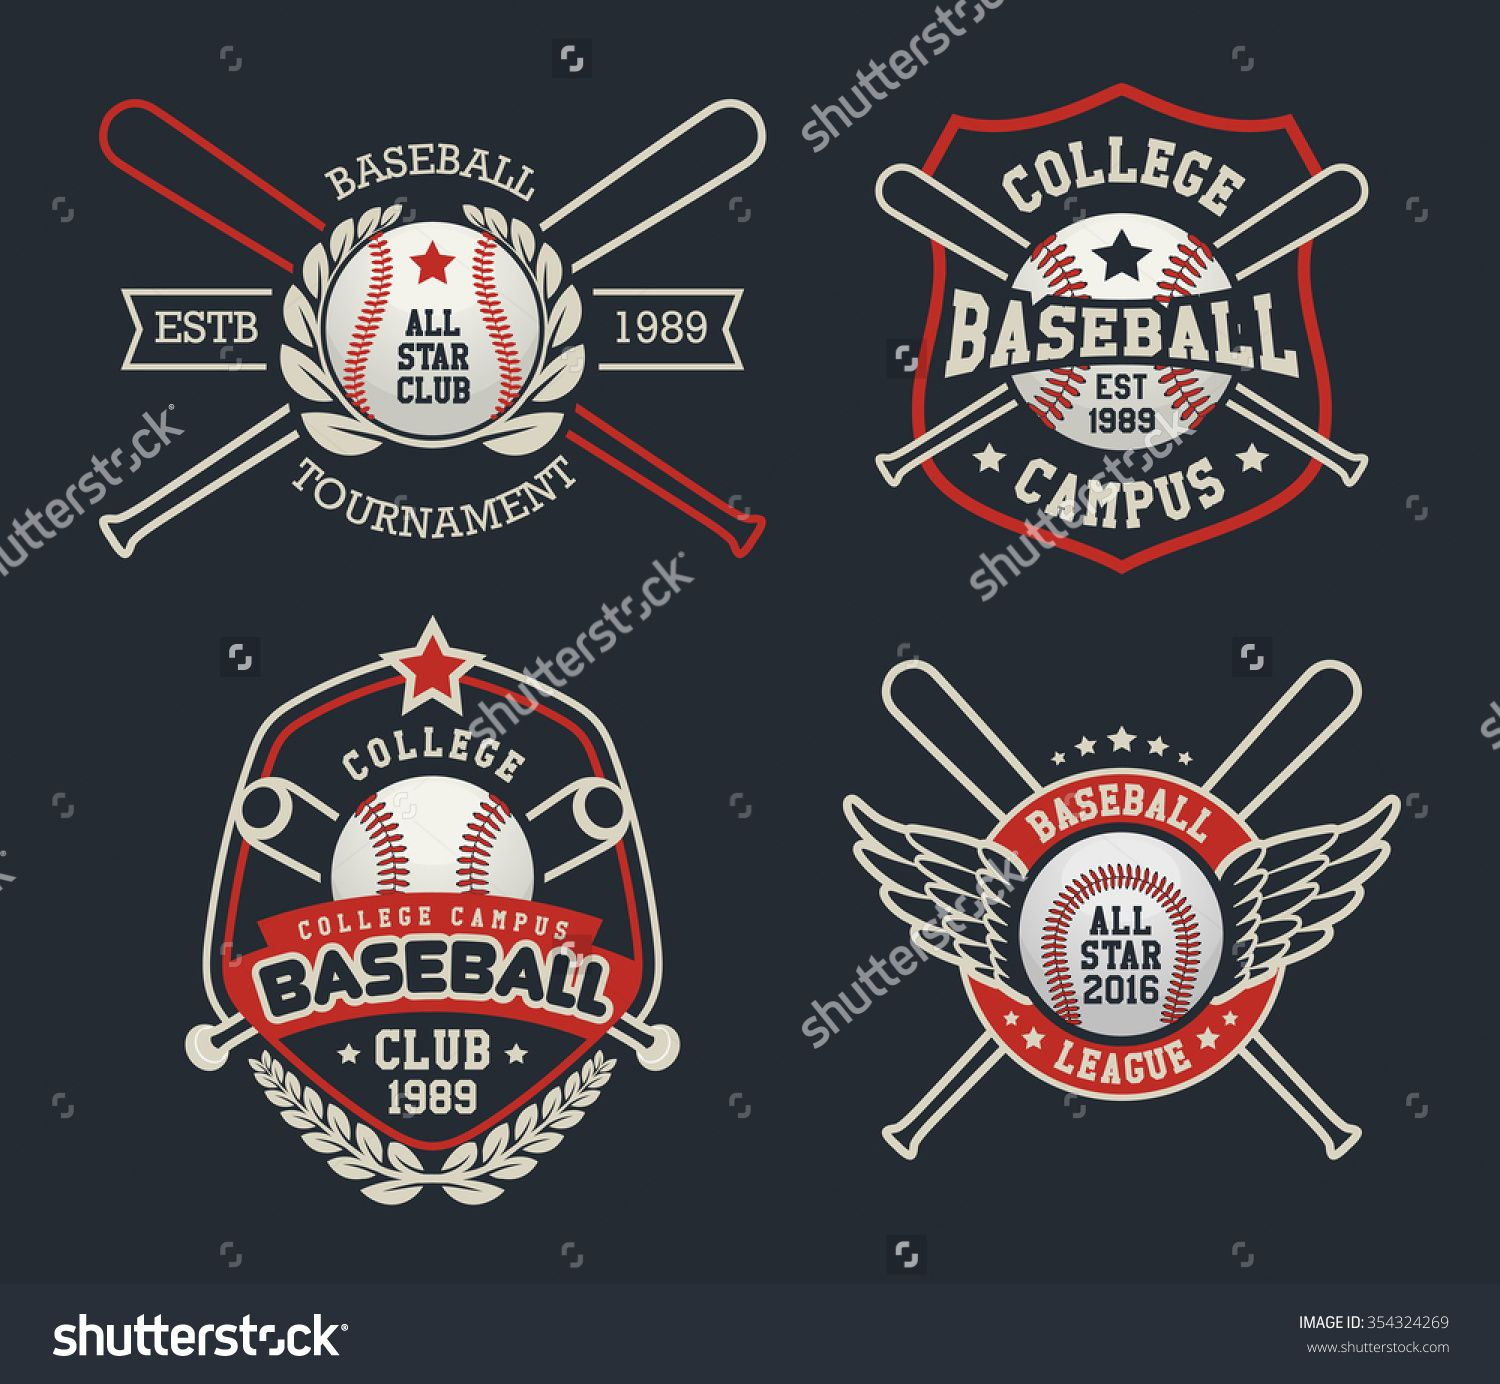 Softball League Champs Vector T-Shirt Design | Softball